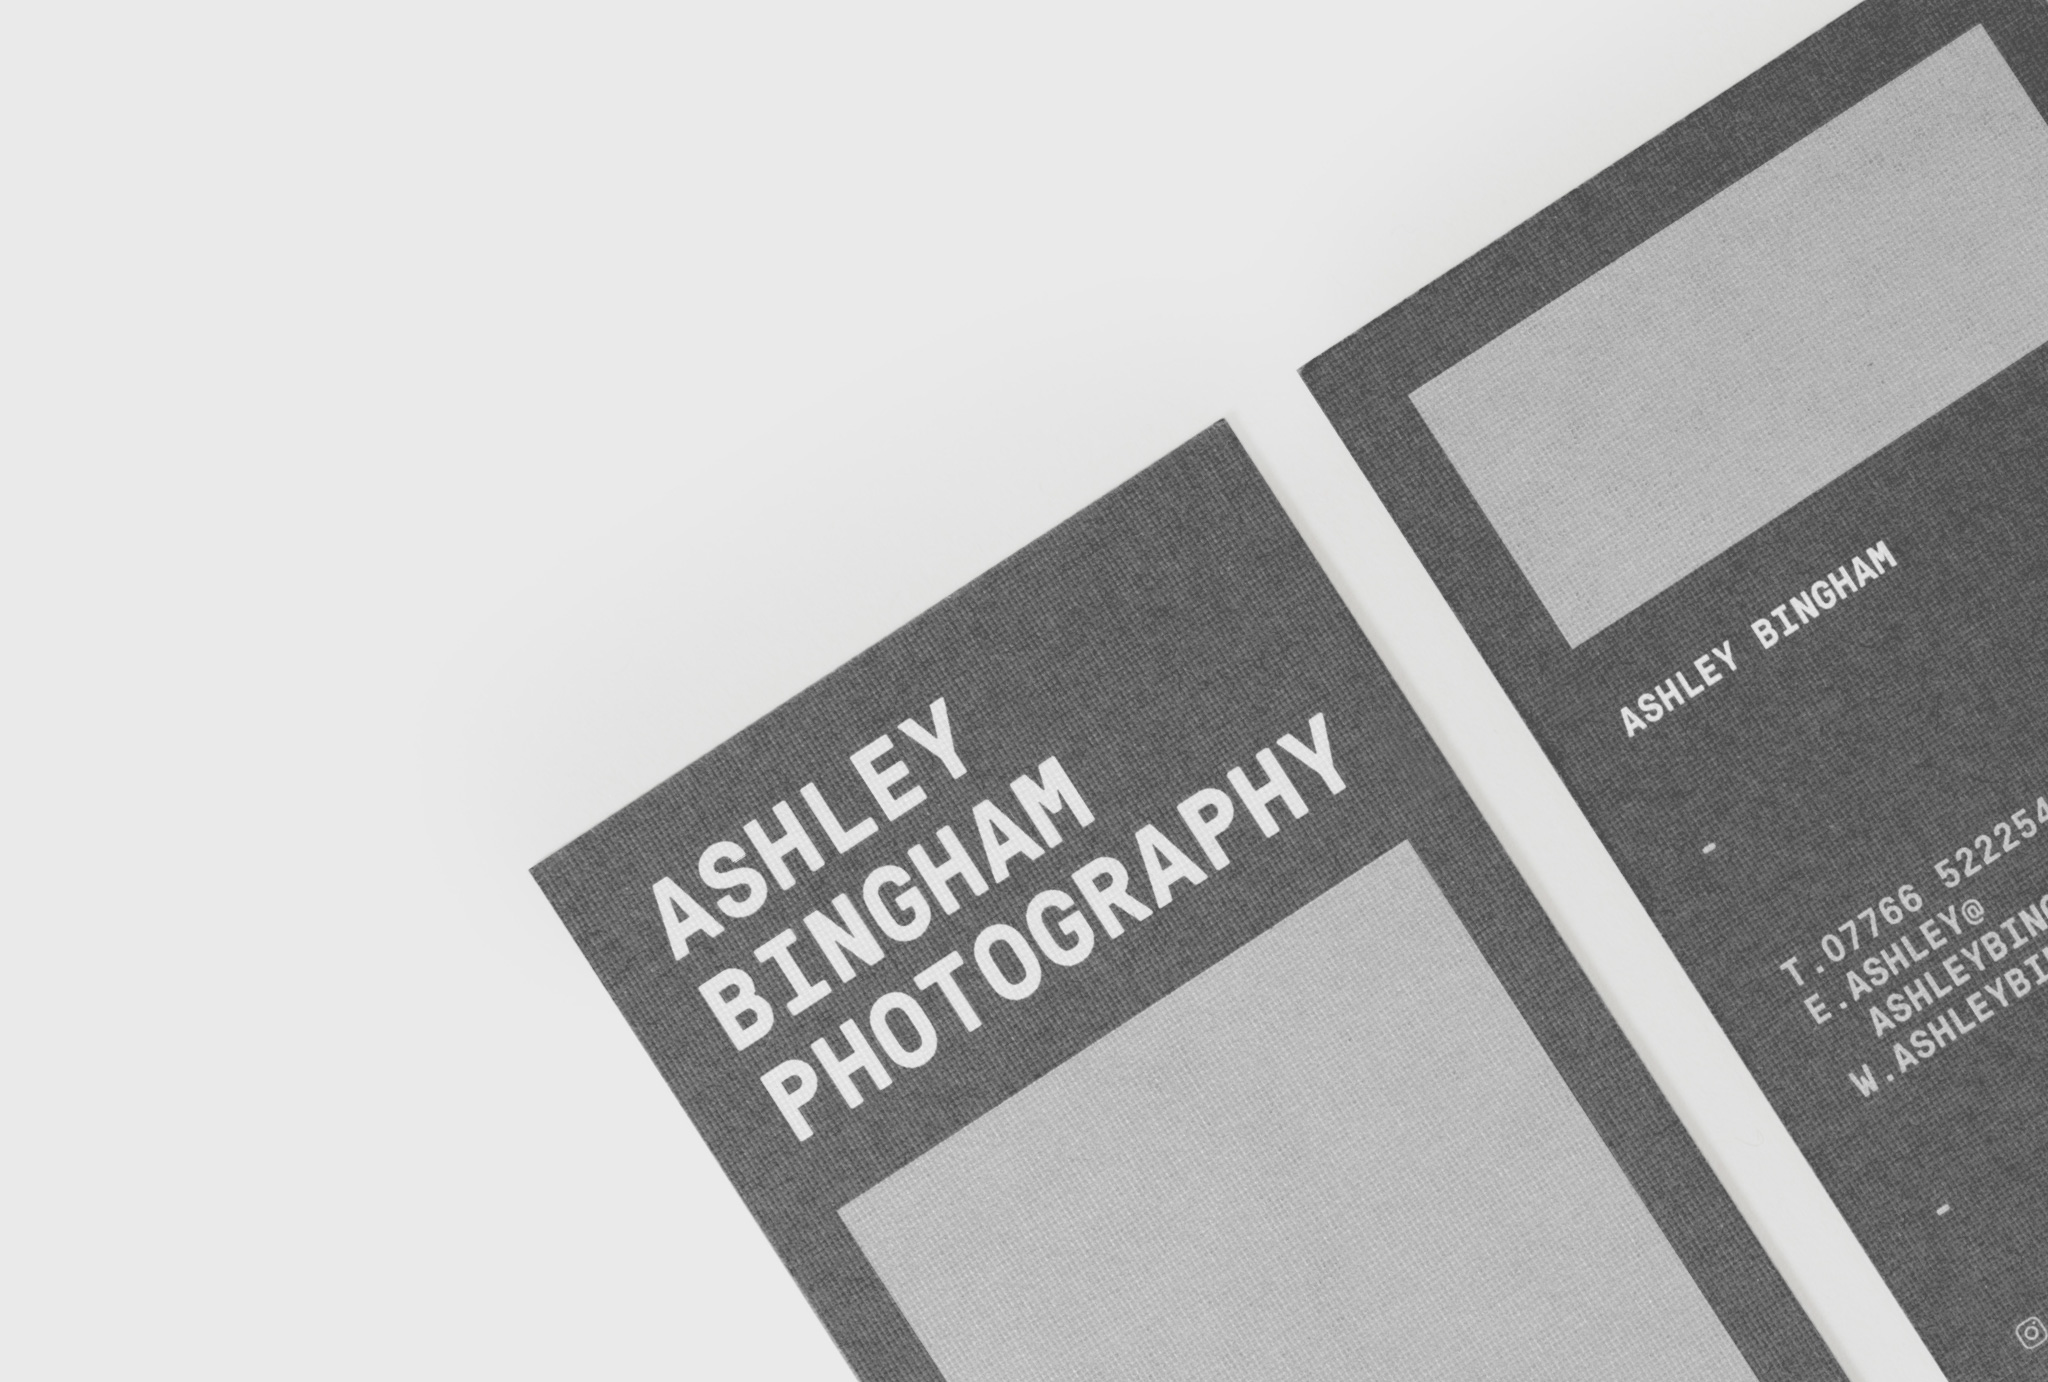 close up at dark grey stationery with light grey boxes and written 'ASHLEY BINGHAM PHOTOGRAPHY'